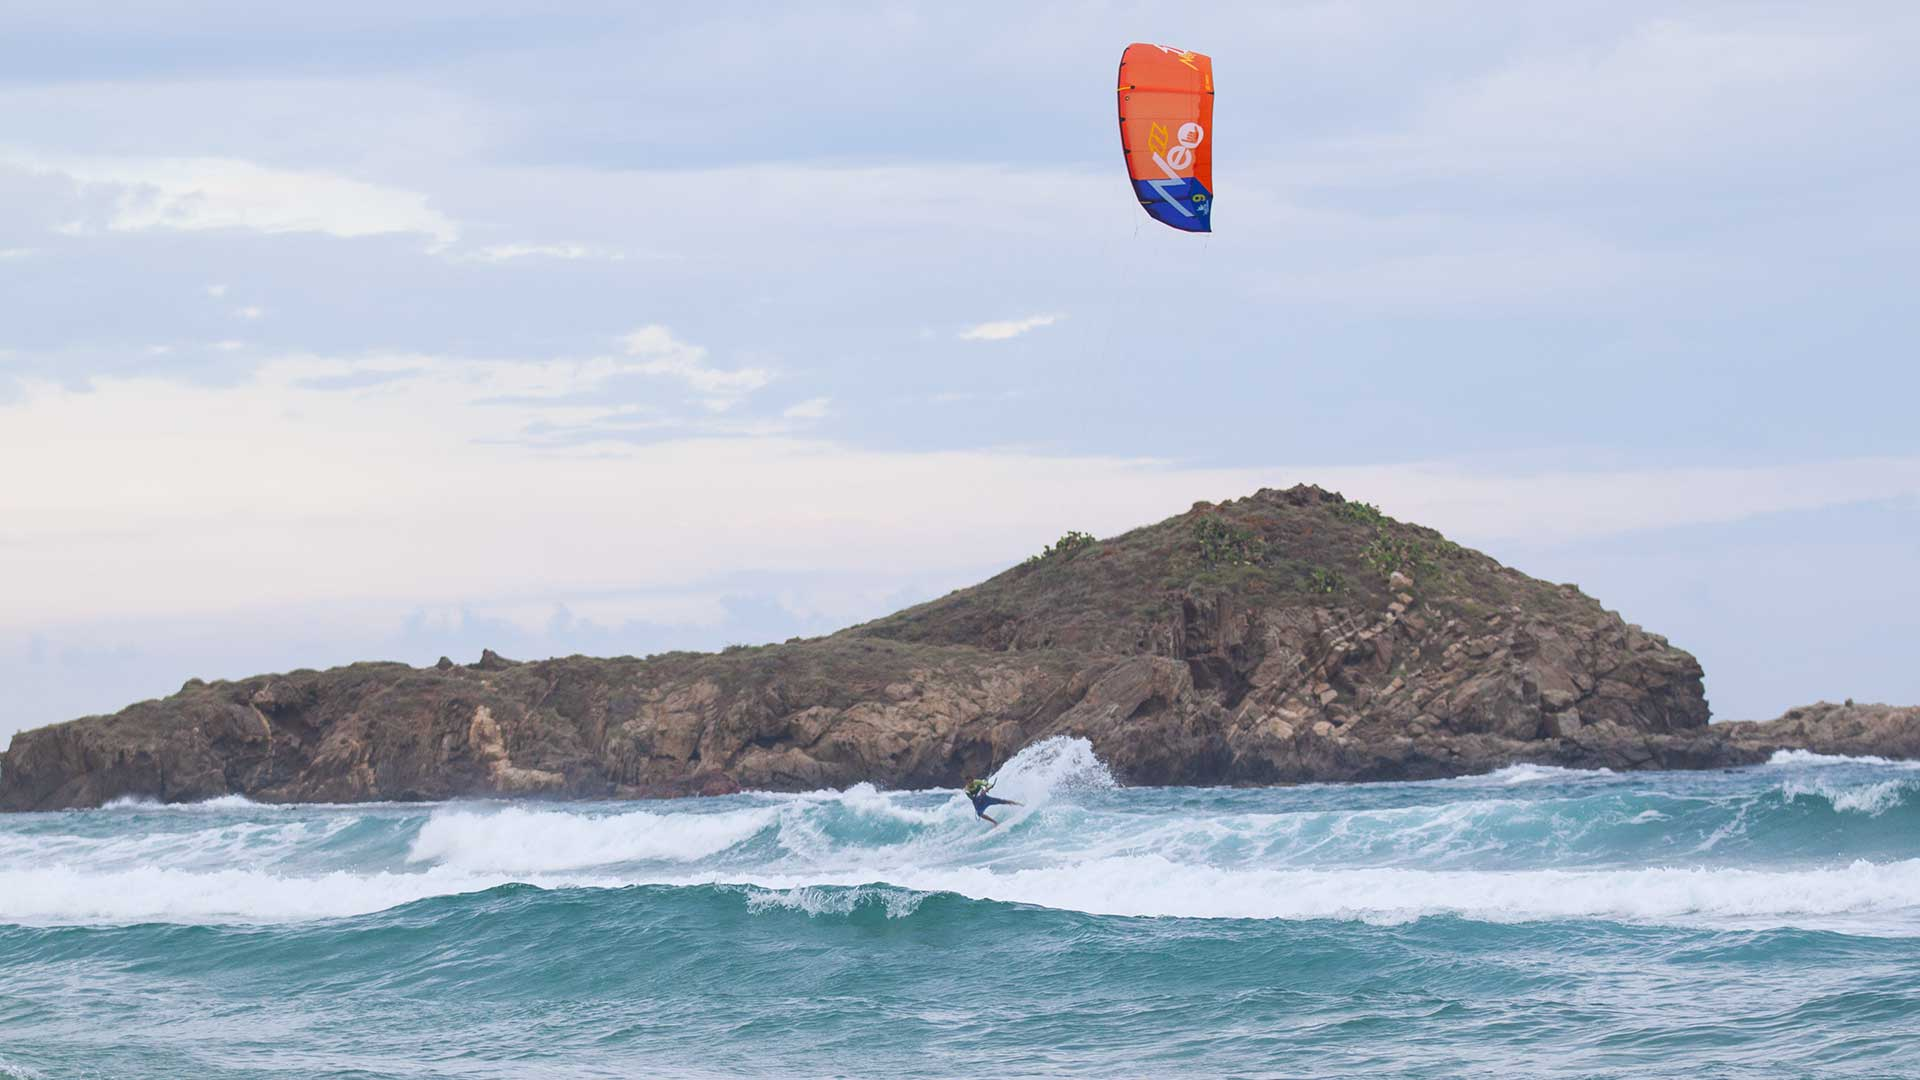 Kitesurfing Chia, Southern Sardinia is a Wave Kite Spot in the Southern Sardinia, suitable just for advanced riders